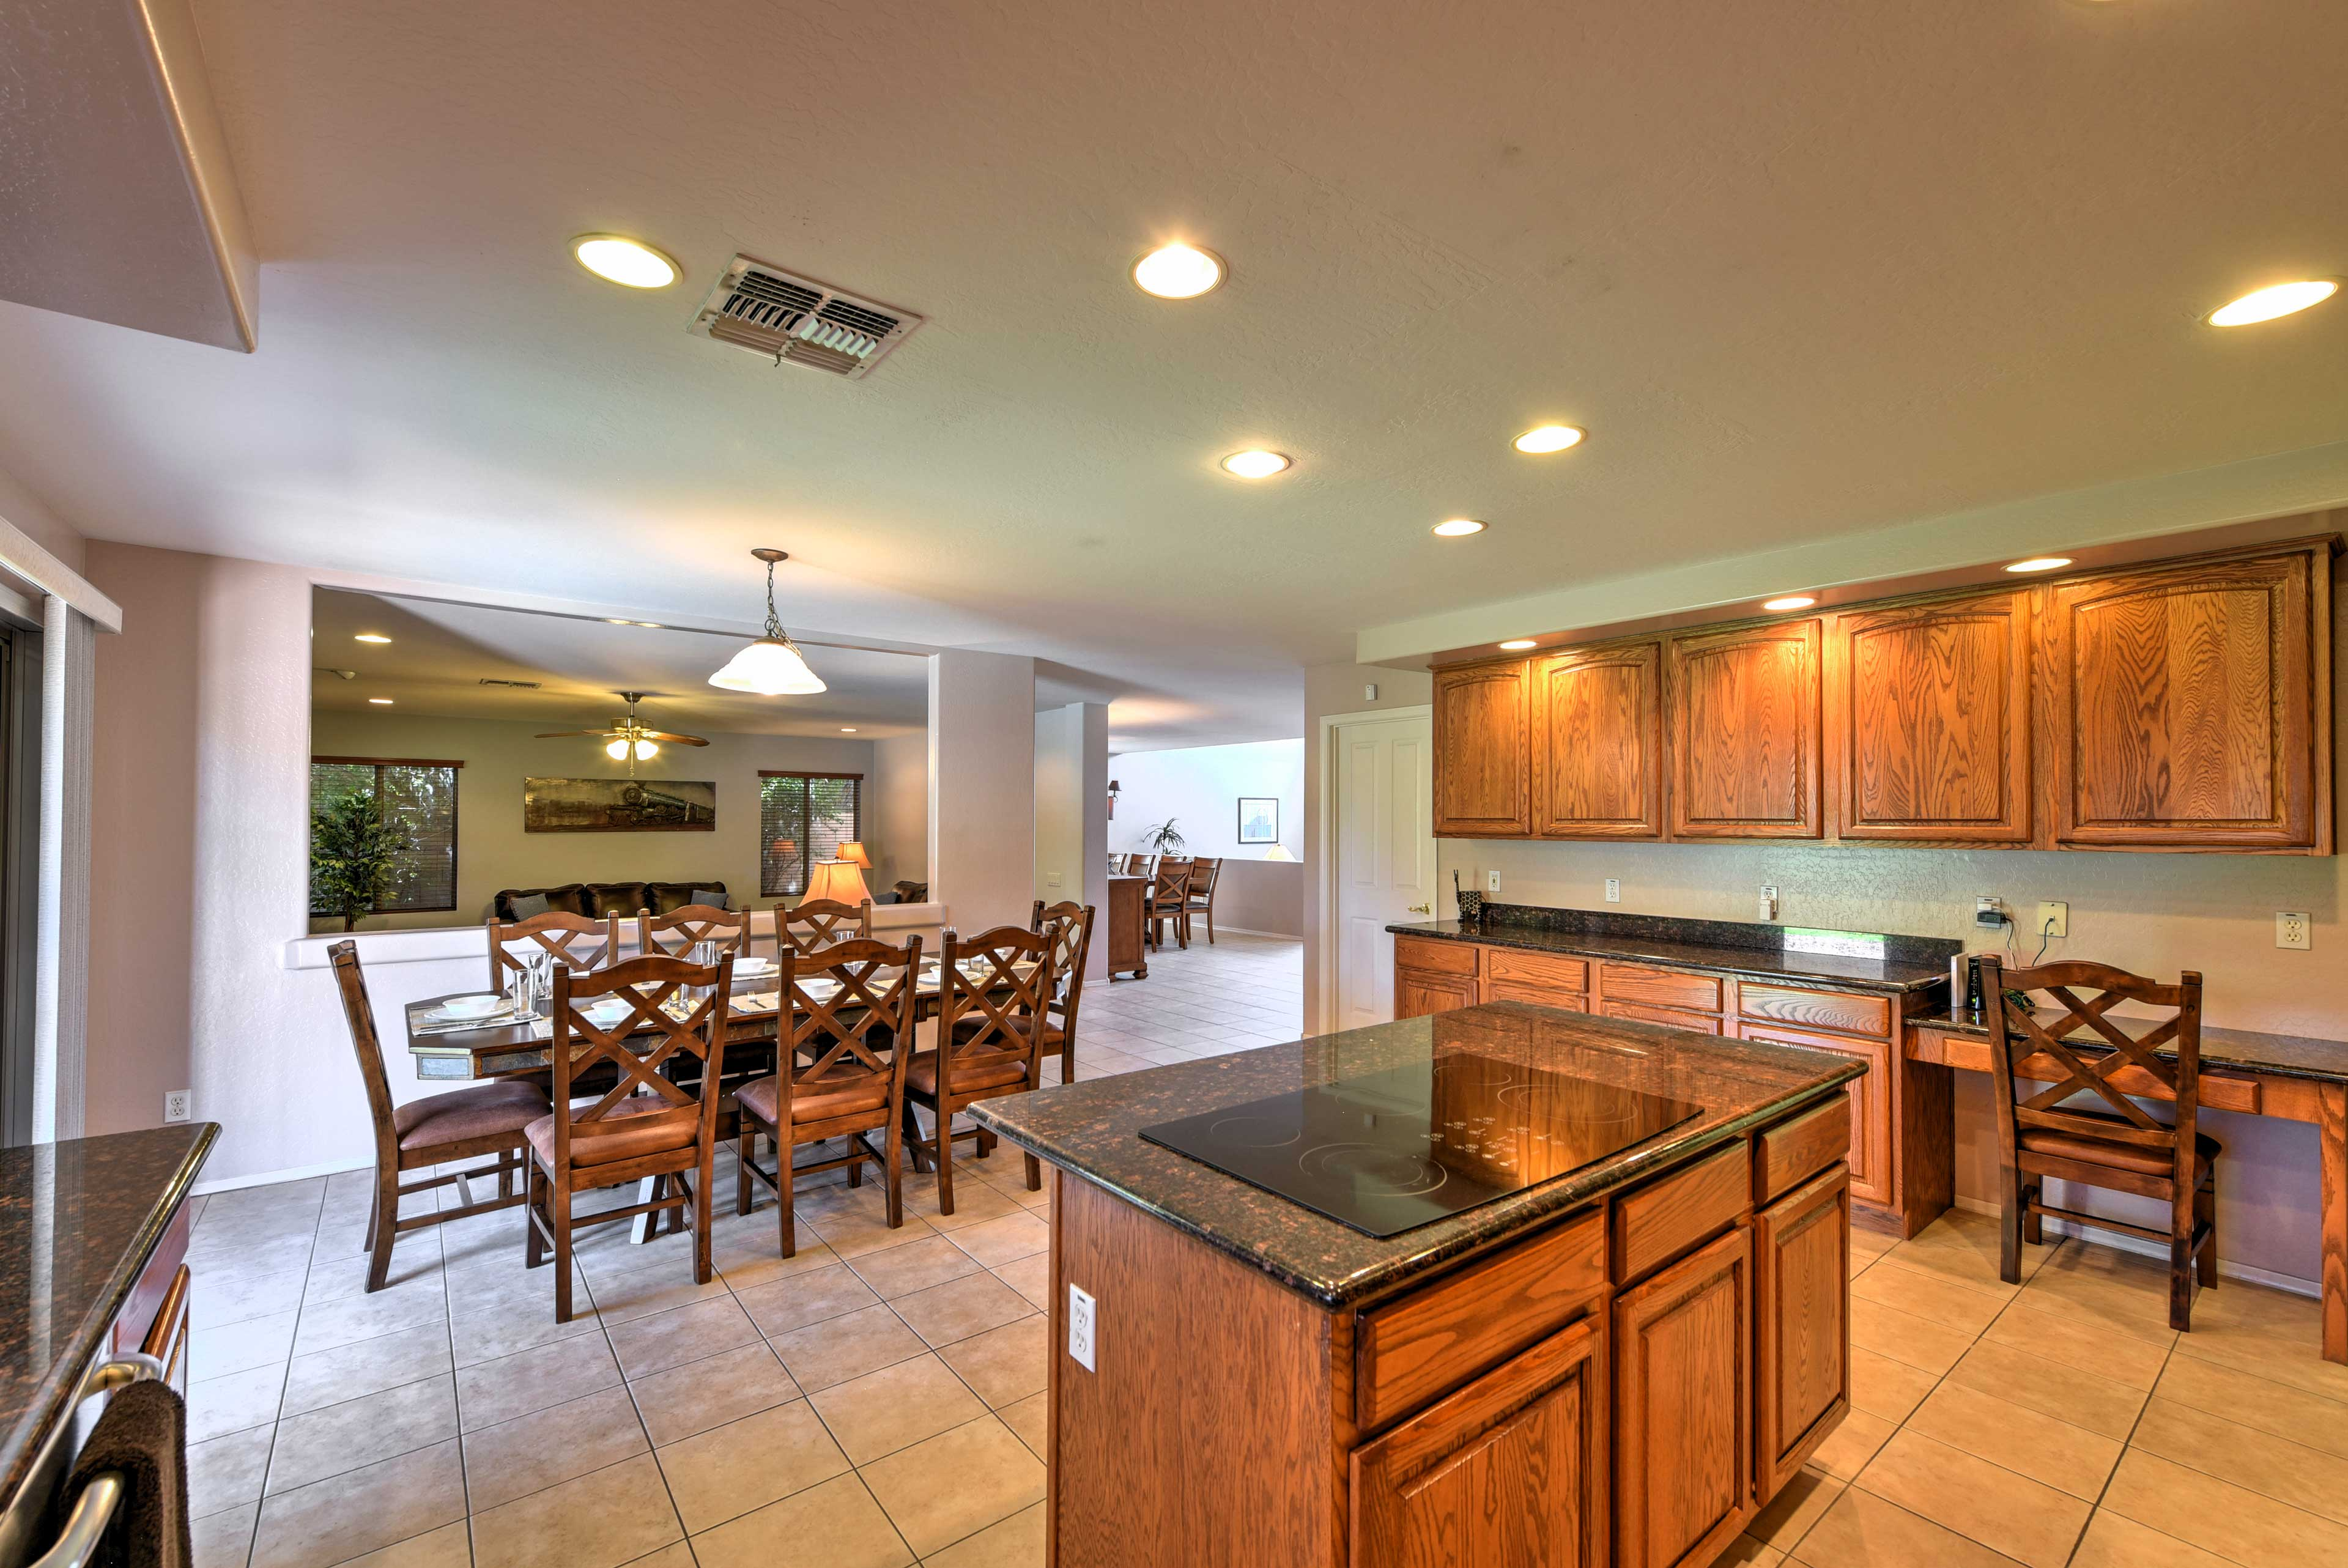 There's plenty of room to move around in this kitchen.